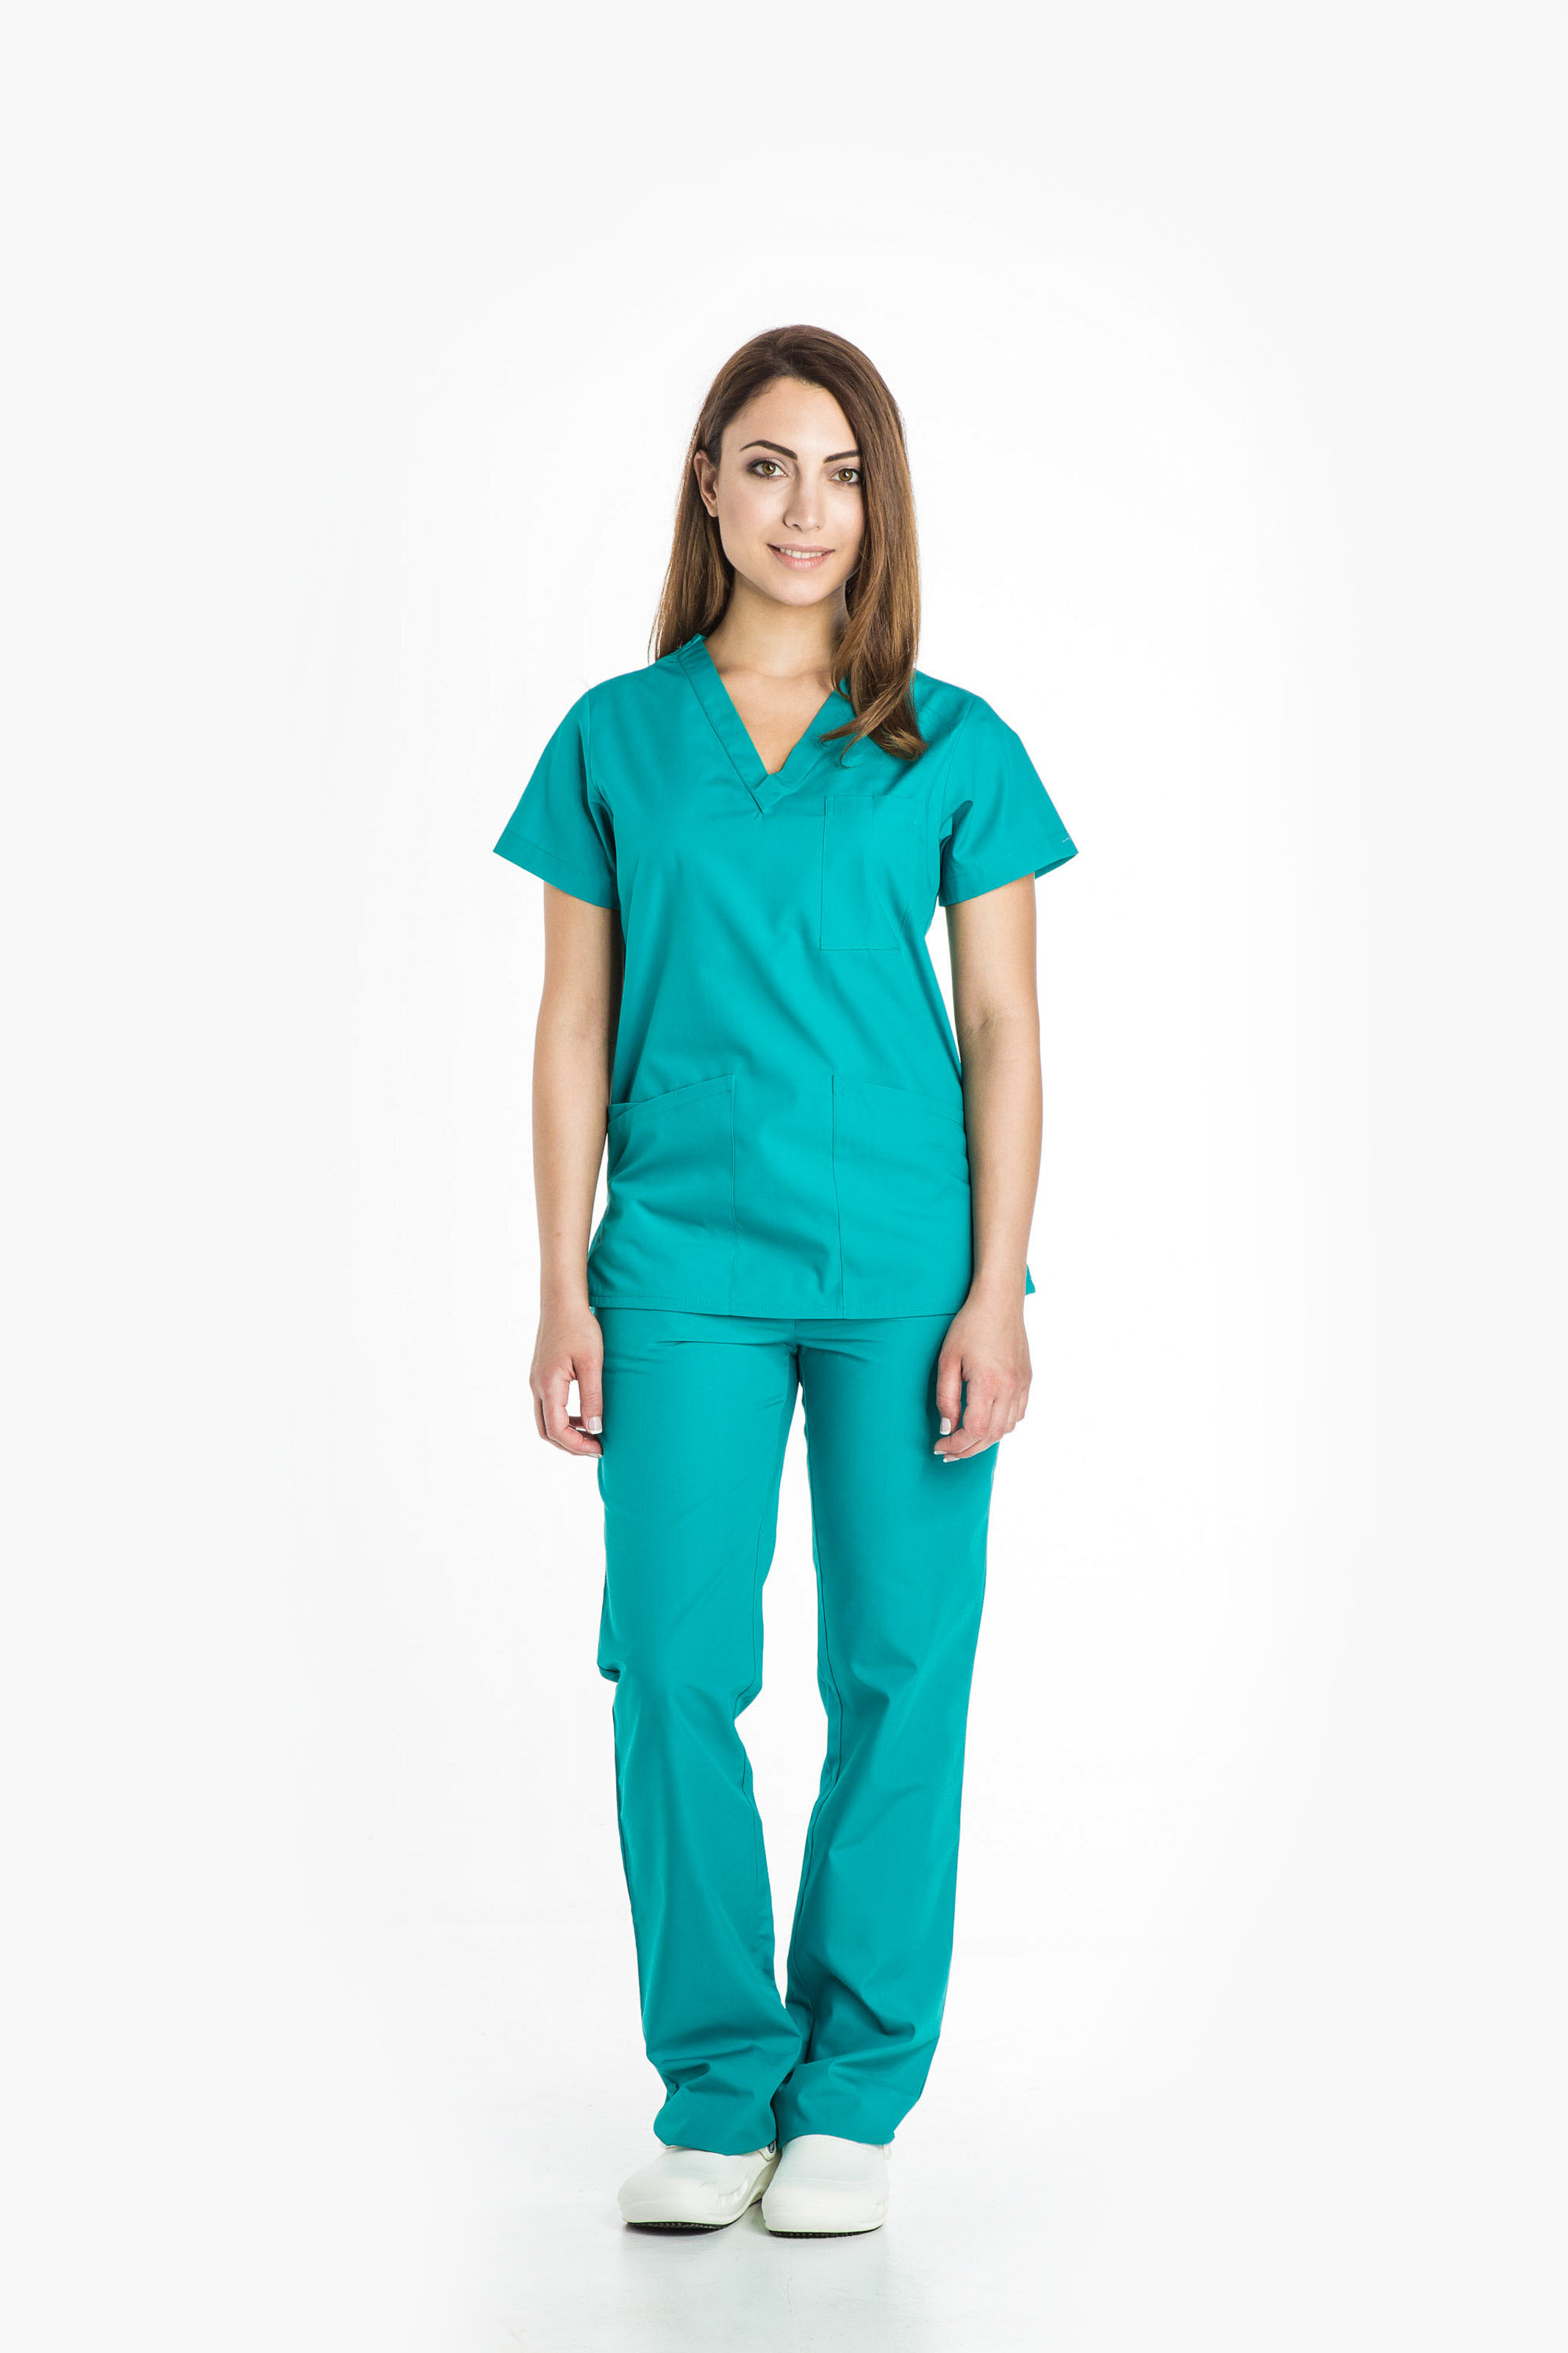 Aris Uniforms-FTU13-Women's V-Neck Tunic